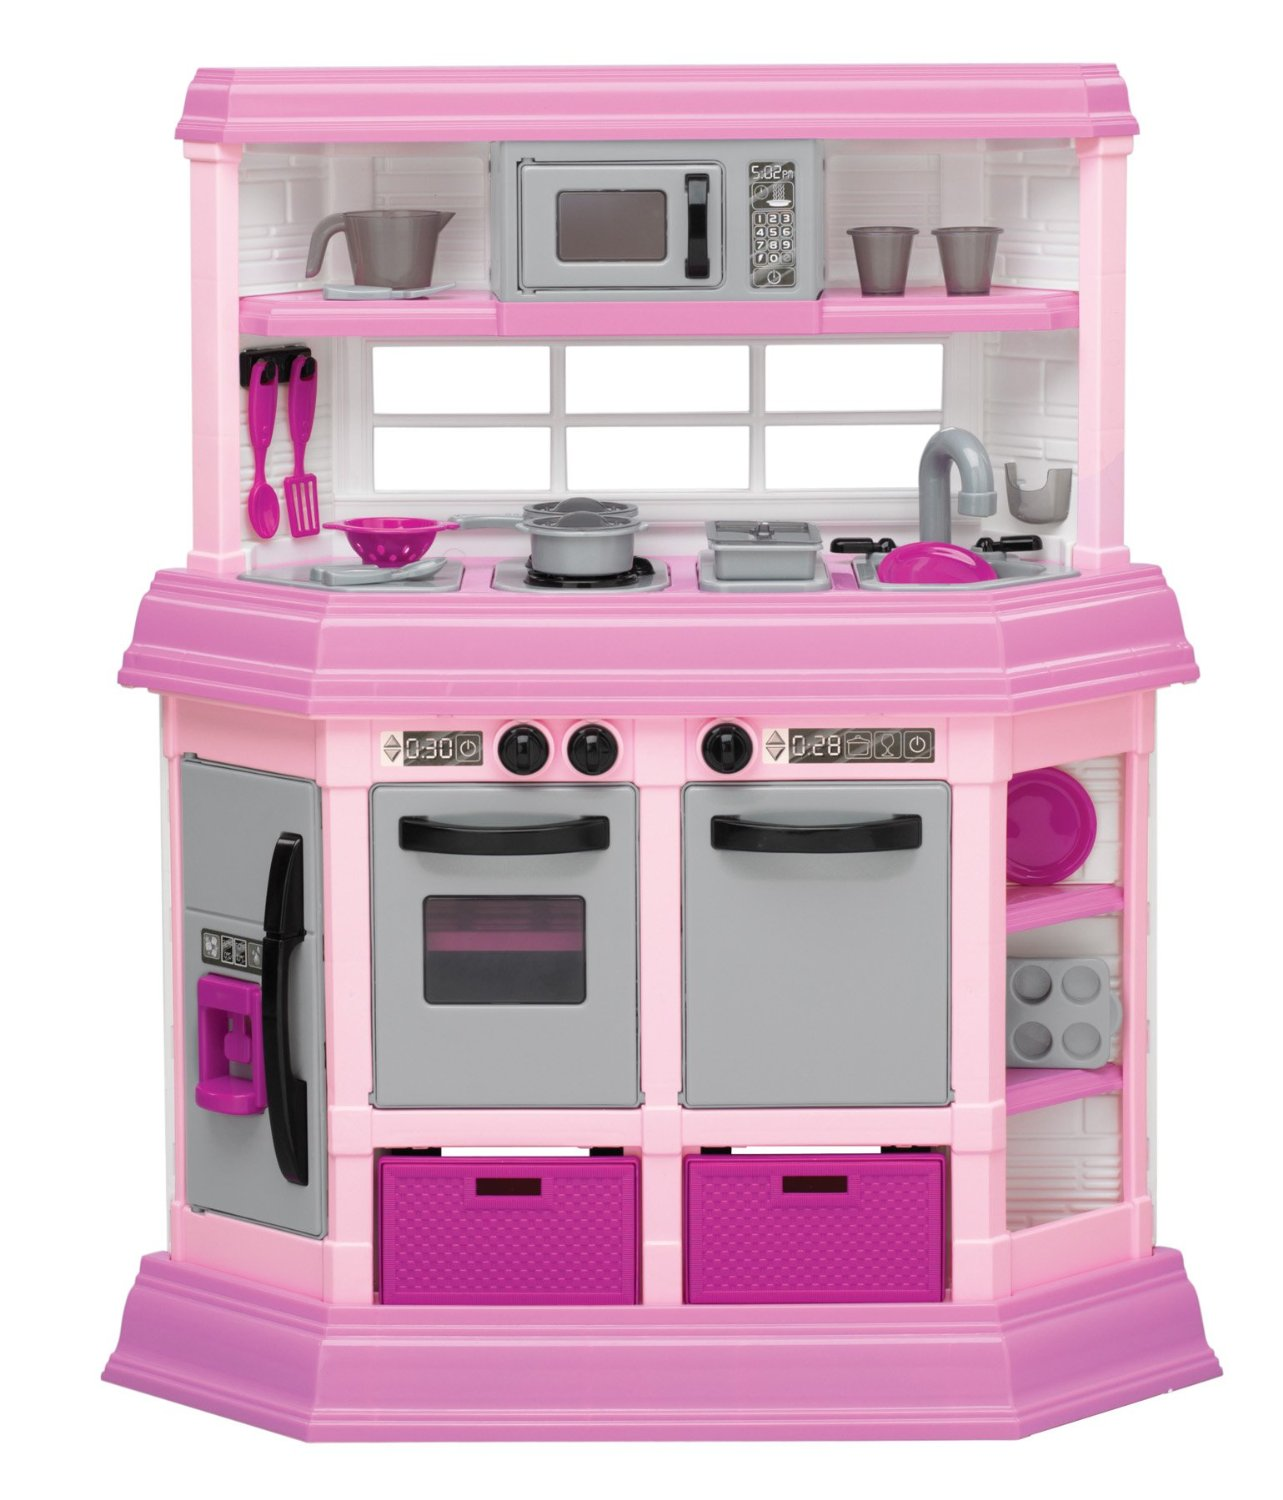 American plastic toy deluxe custom kitchen review for Best kitchen set for 4 year old